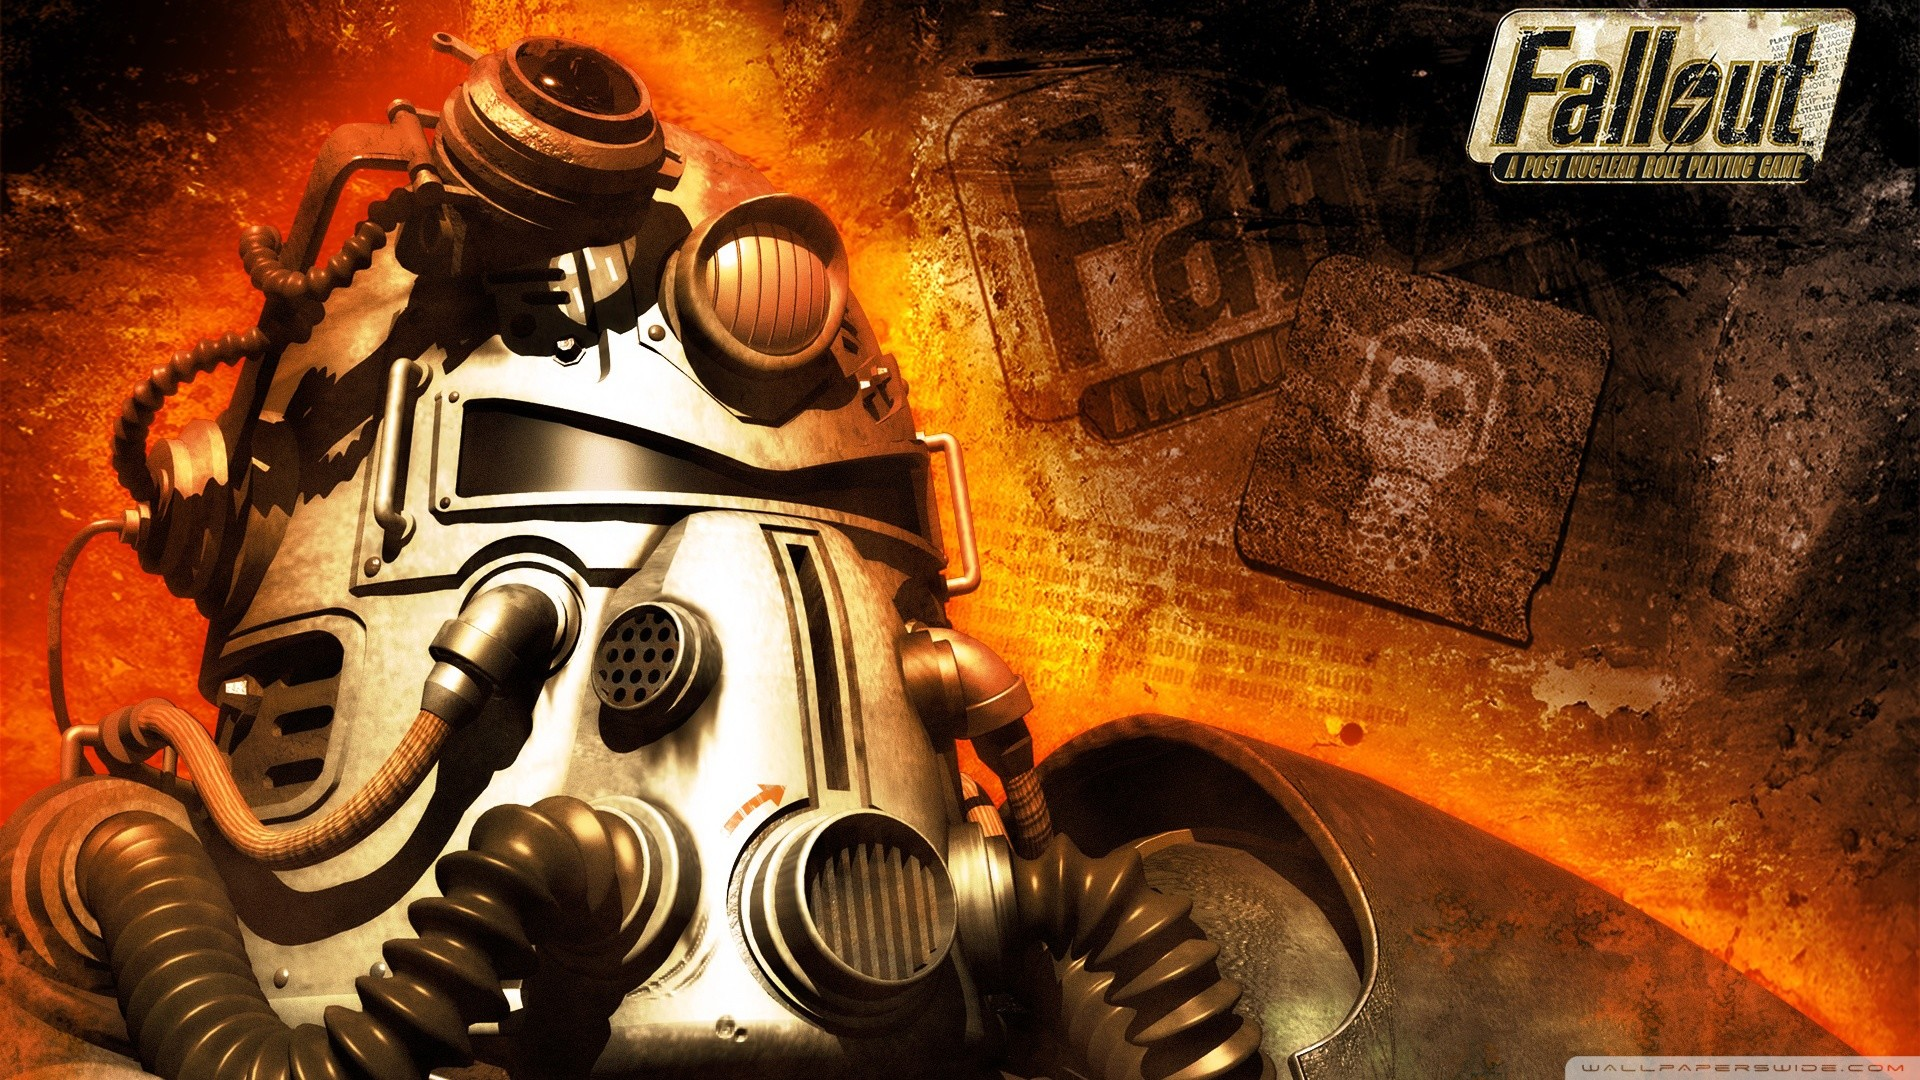 fallout_1-wallpaper-1920×1080-by-acer_9876.  Fallout_3_Brotherhood_of_Steel_Exploding_HD_Wallpaper_Vvallpaper.